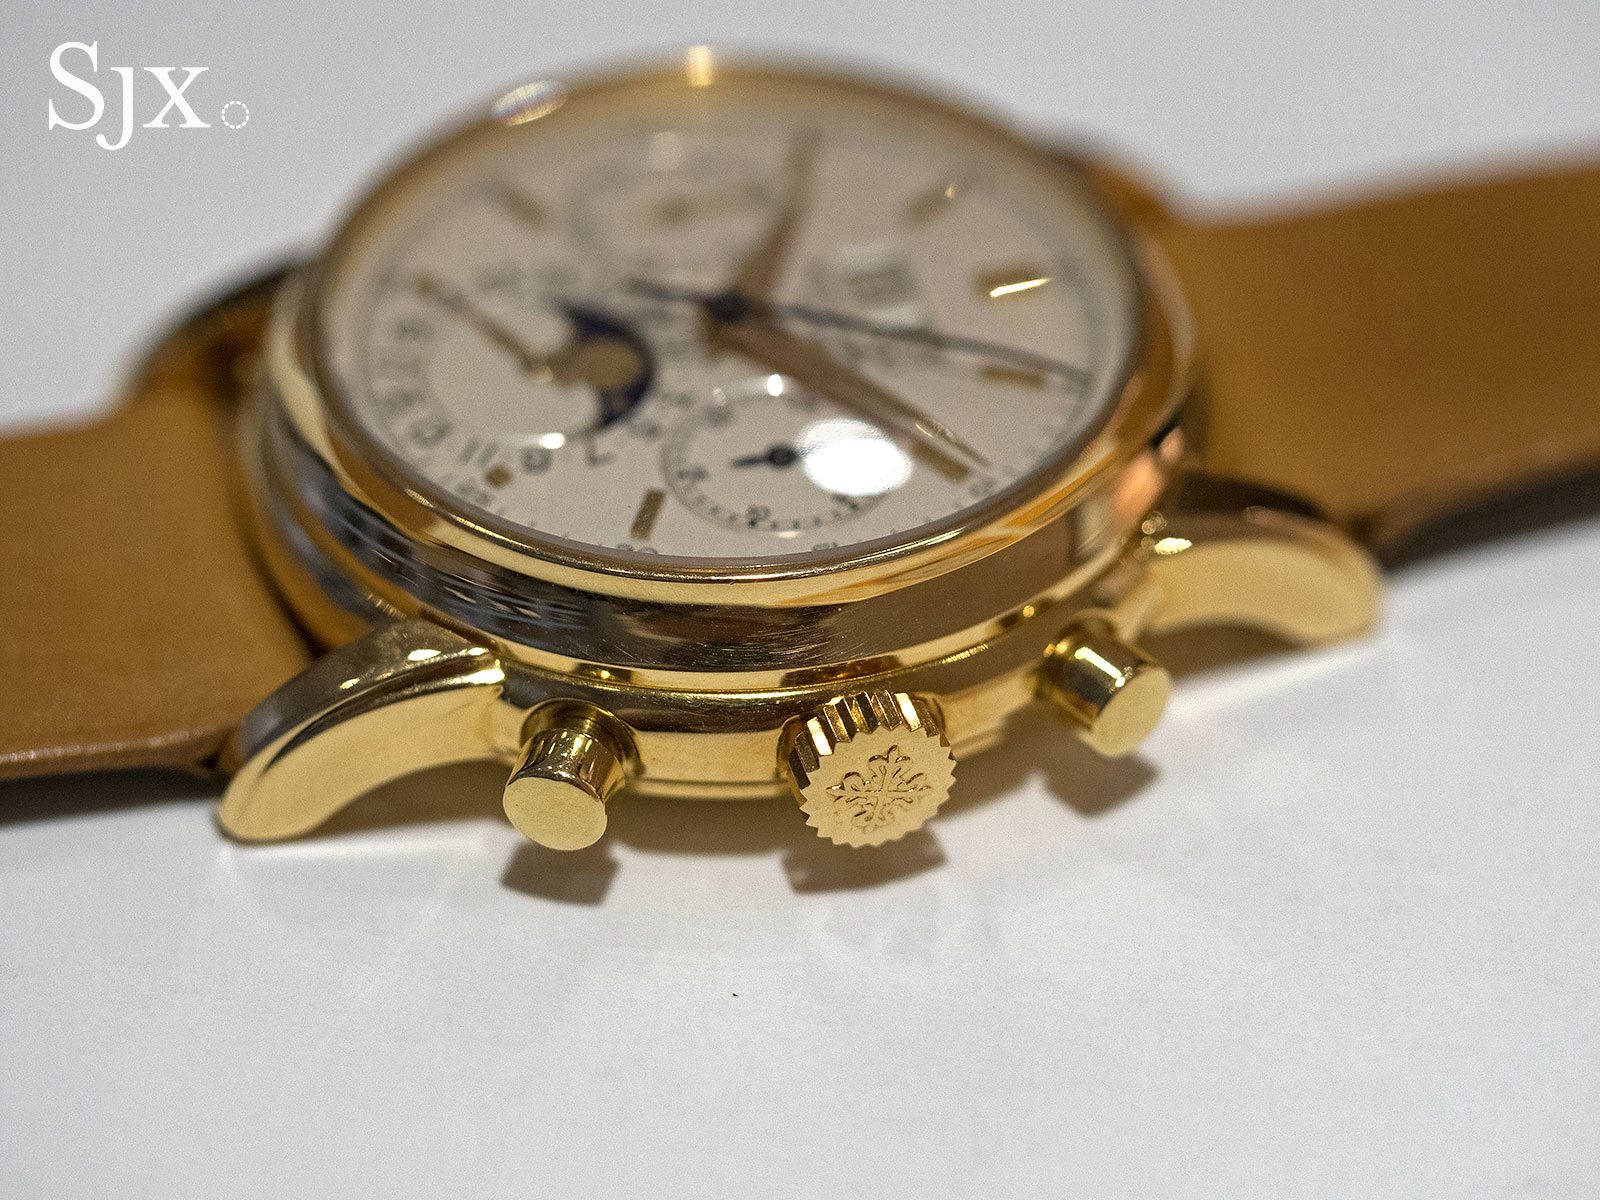 Patek Philippe 2499 yellow gold fourth series 9